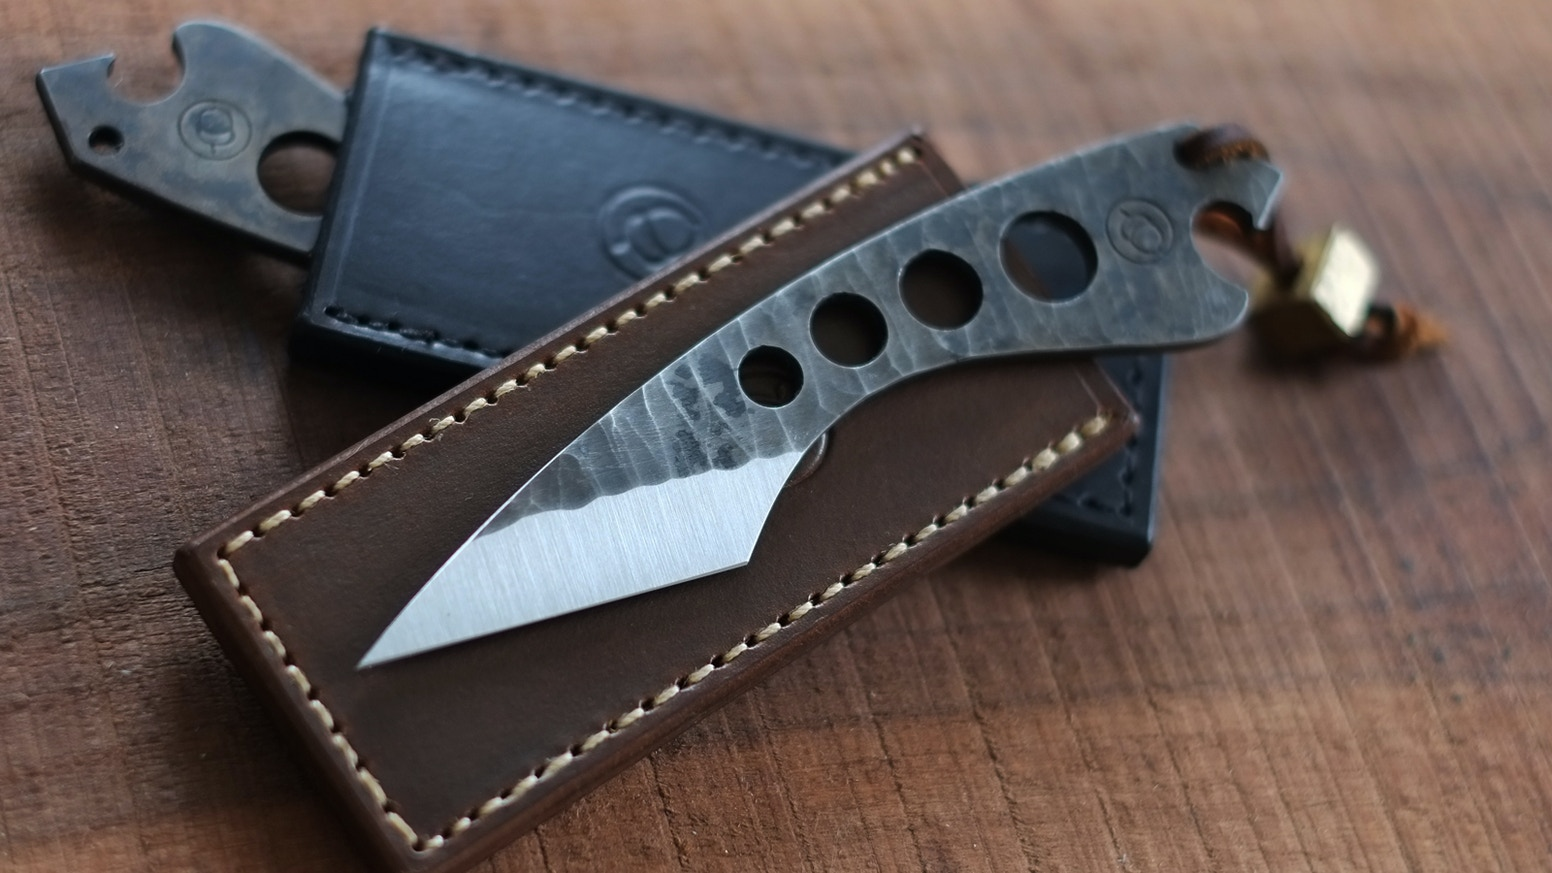 A minimalist pocket tool designed for a lifetime of utility.